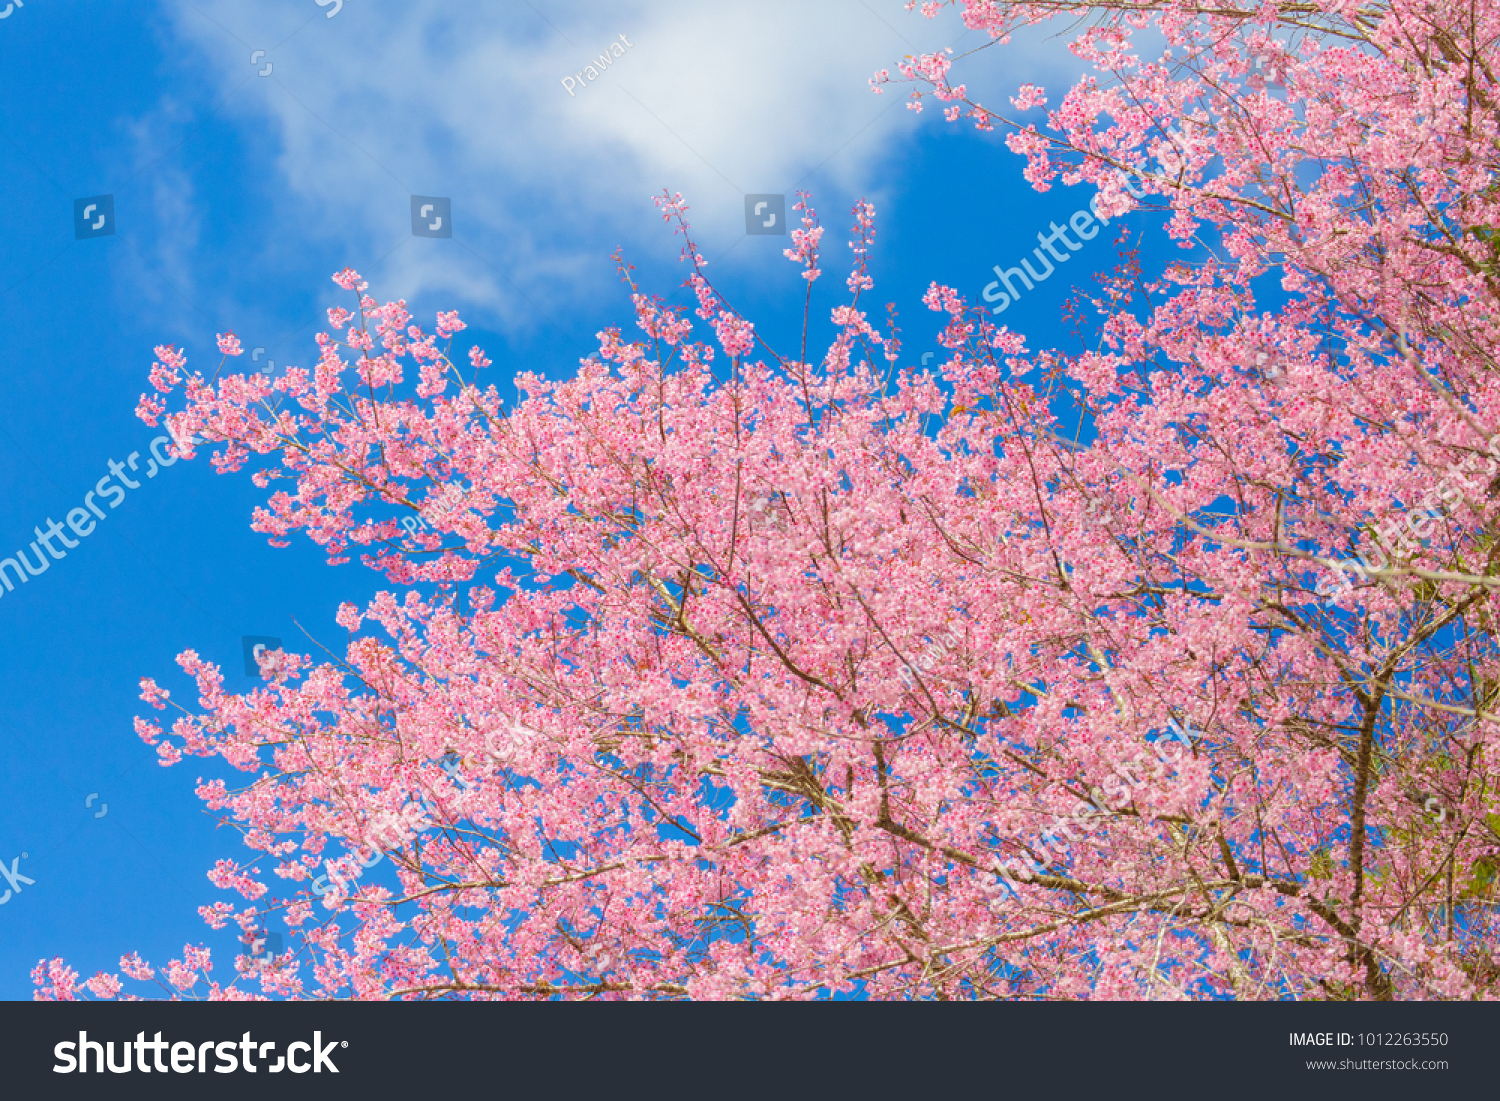 Beautiful pink flower tree blue sky stock photo edit now beautiful pink flower tree with blue sky background izmirmasajfo